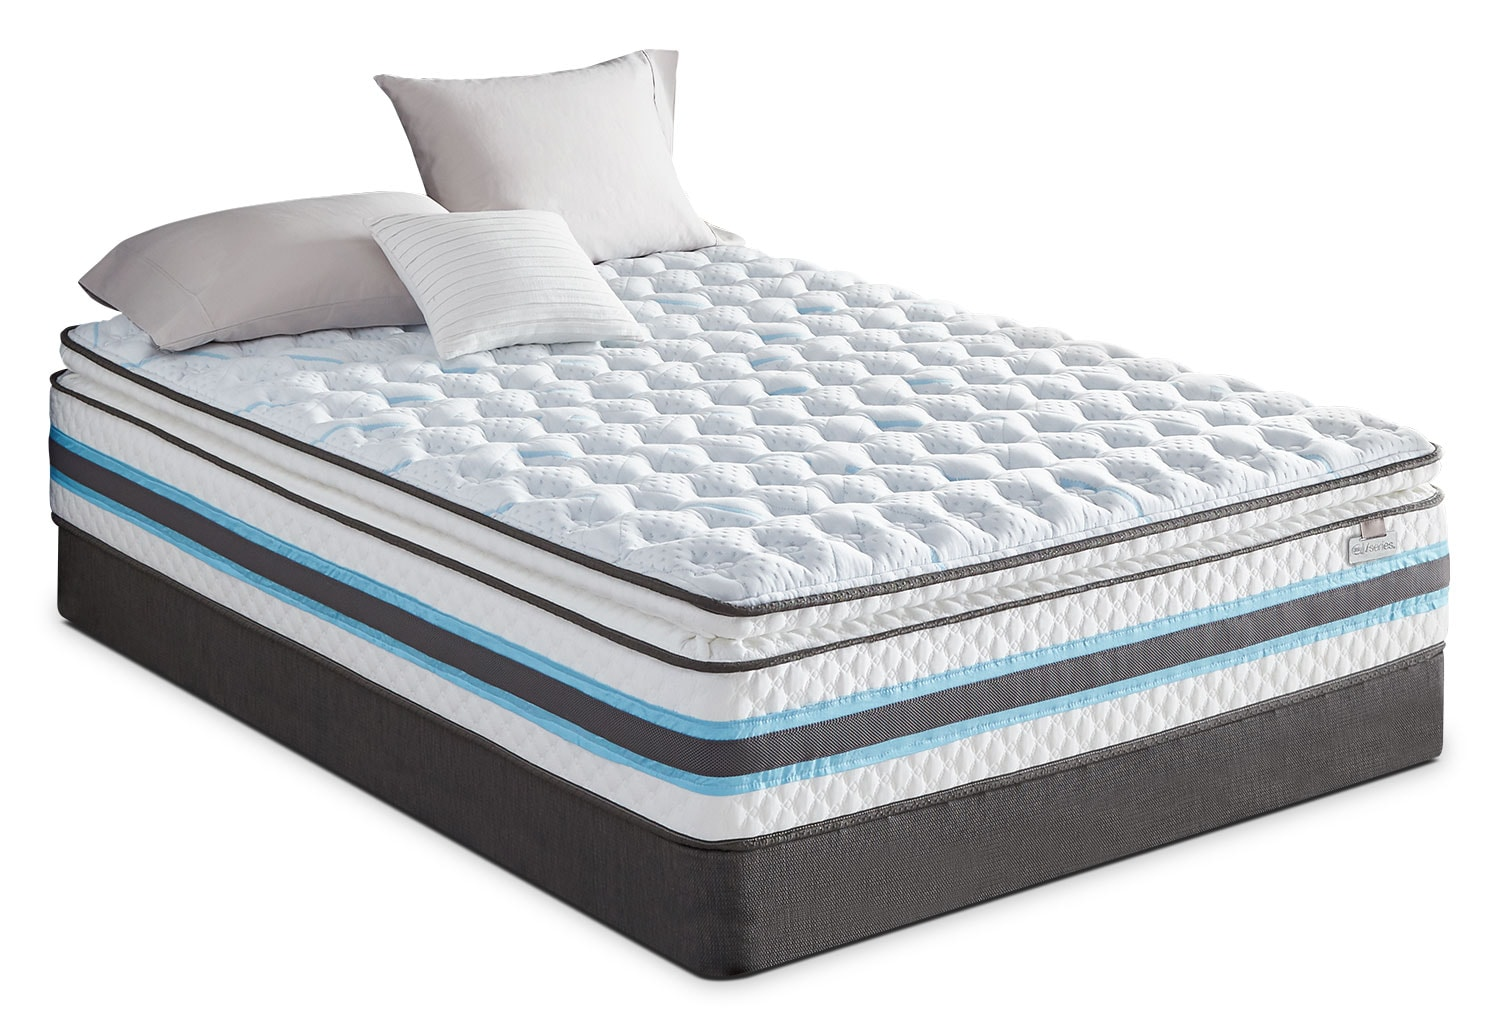 Mattresses and Bedding - Serta iSeries® Breathtaking Pillow-Top Plush Full Mattress Set